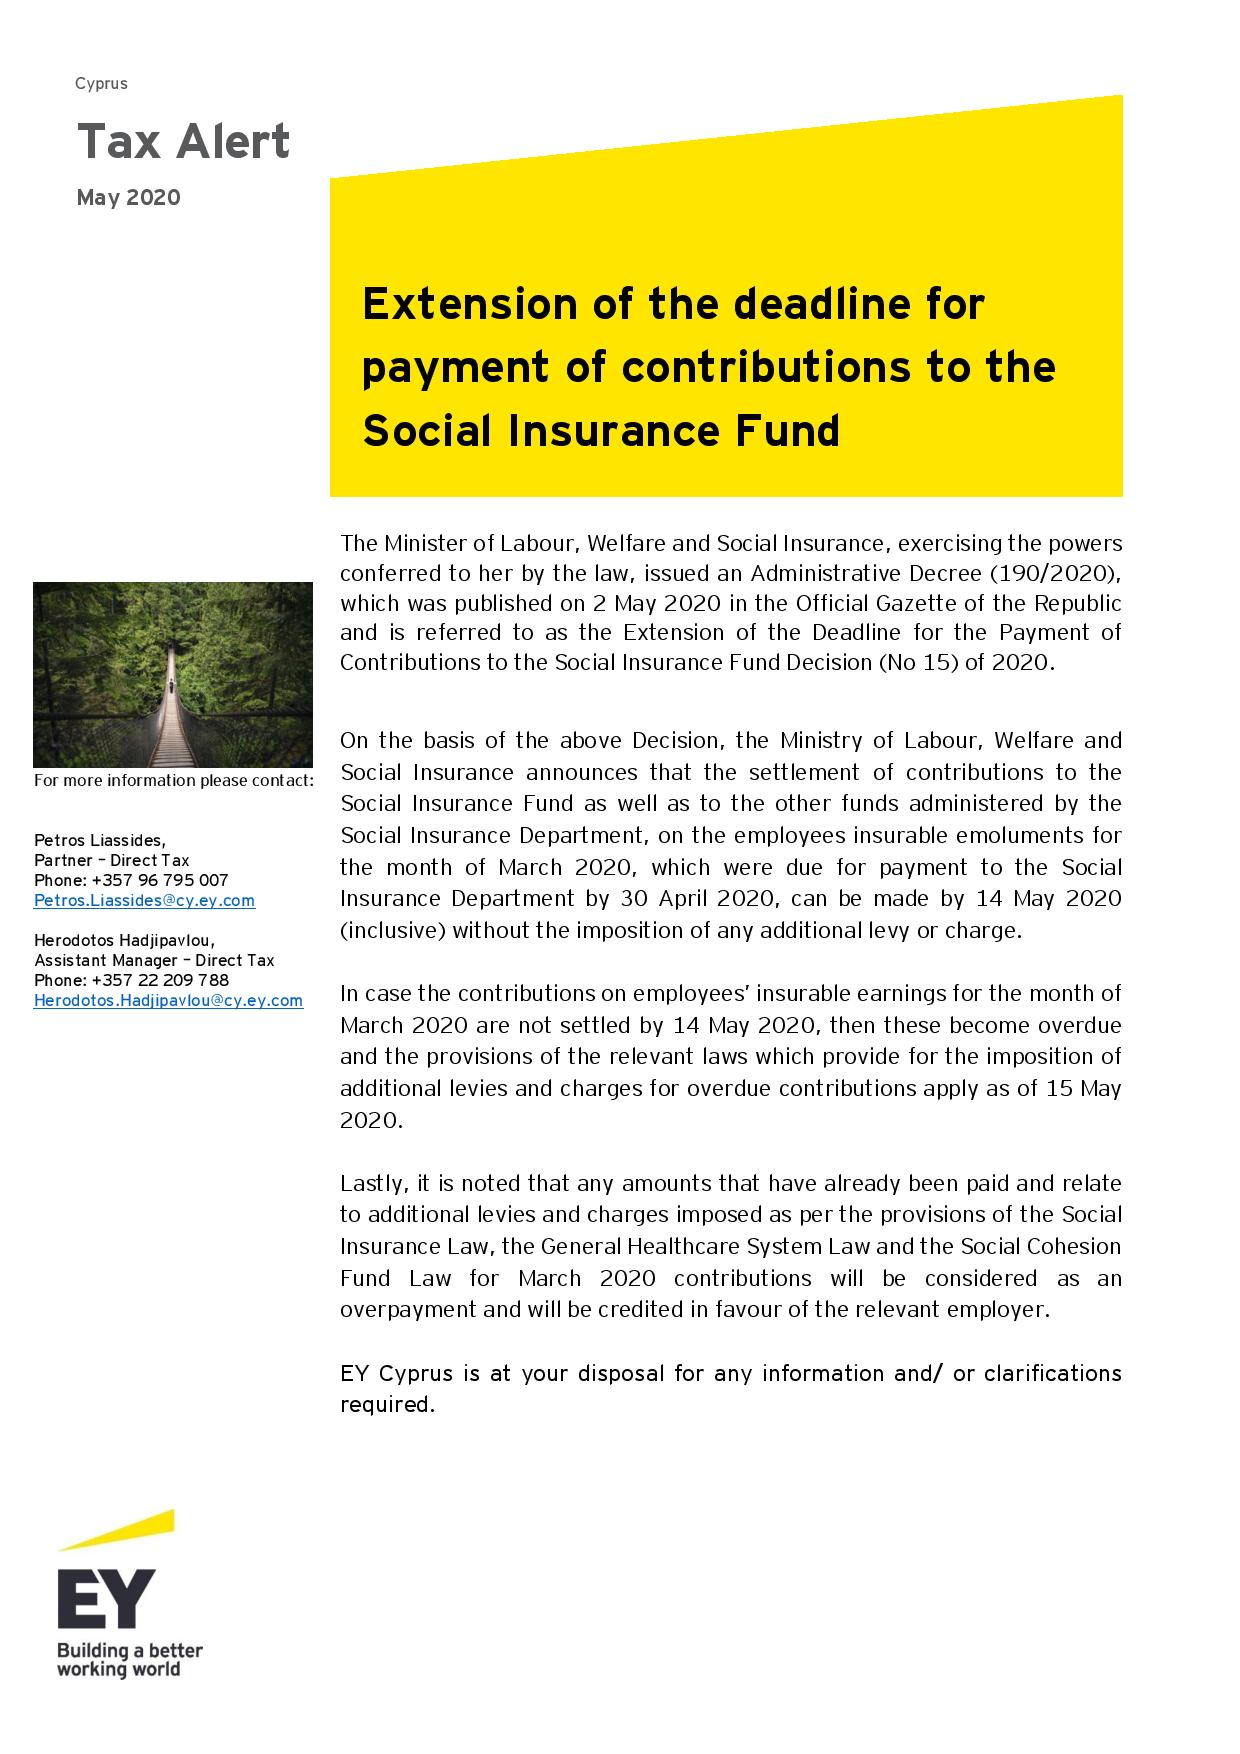 EY Cyprus: Extension of the deadline for payment of contributions to the Social Insurance Fund